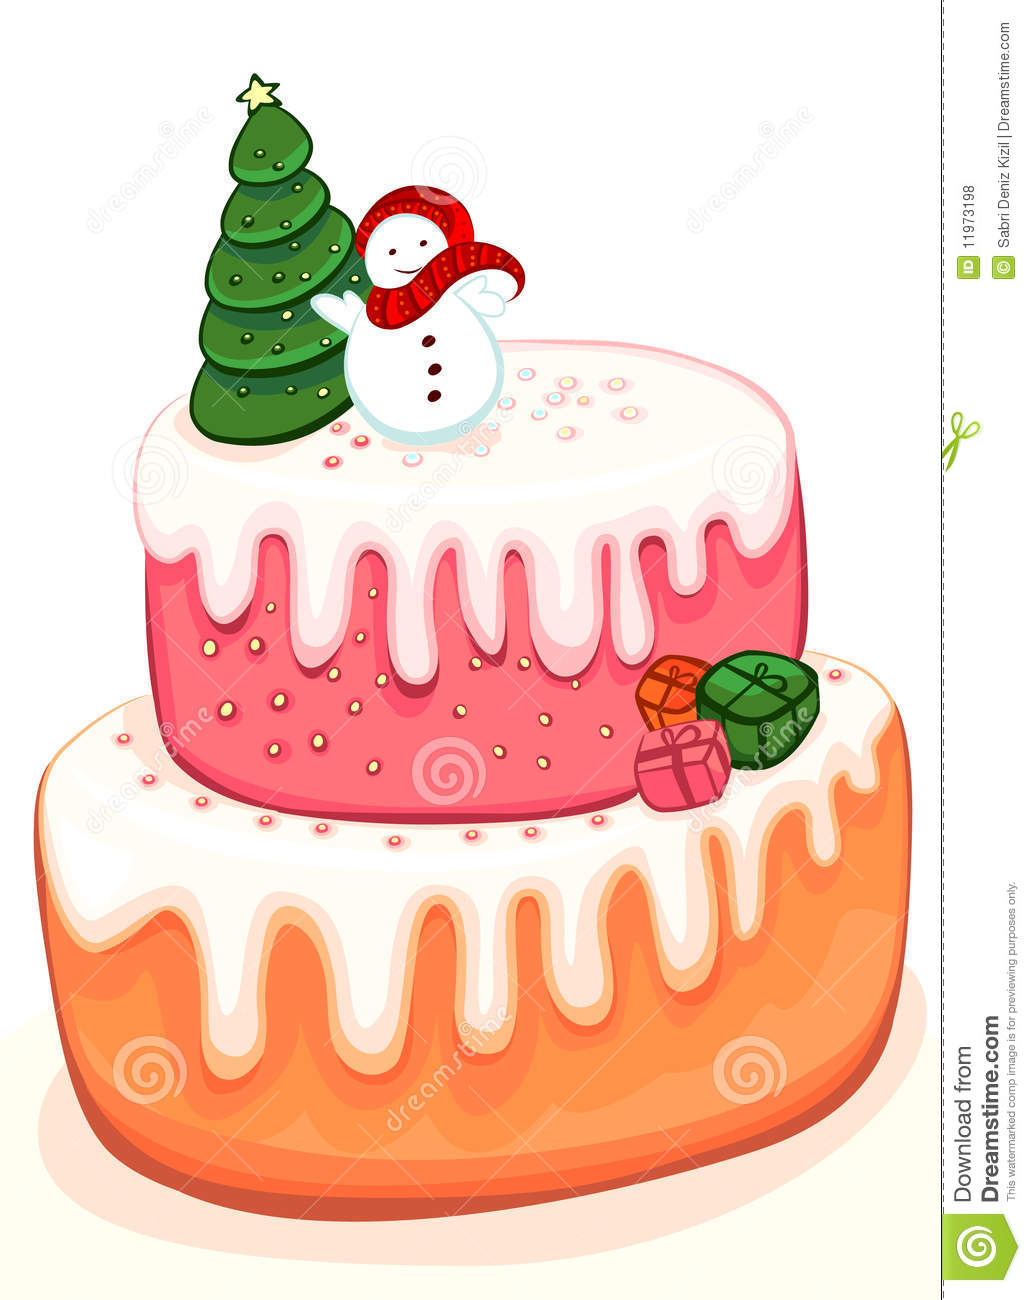 Christmas Cake Pictures Clip Art : Christmas Birthday Cake Clipart - Clipart Suggest